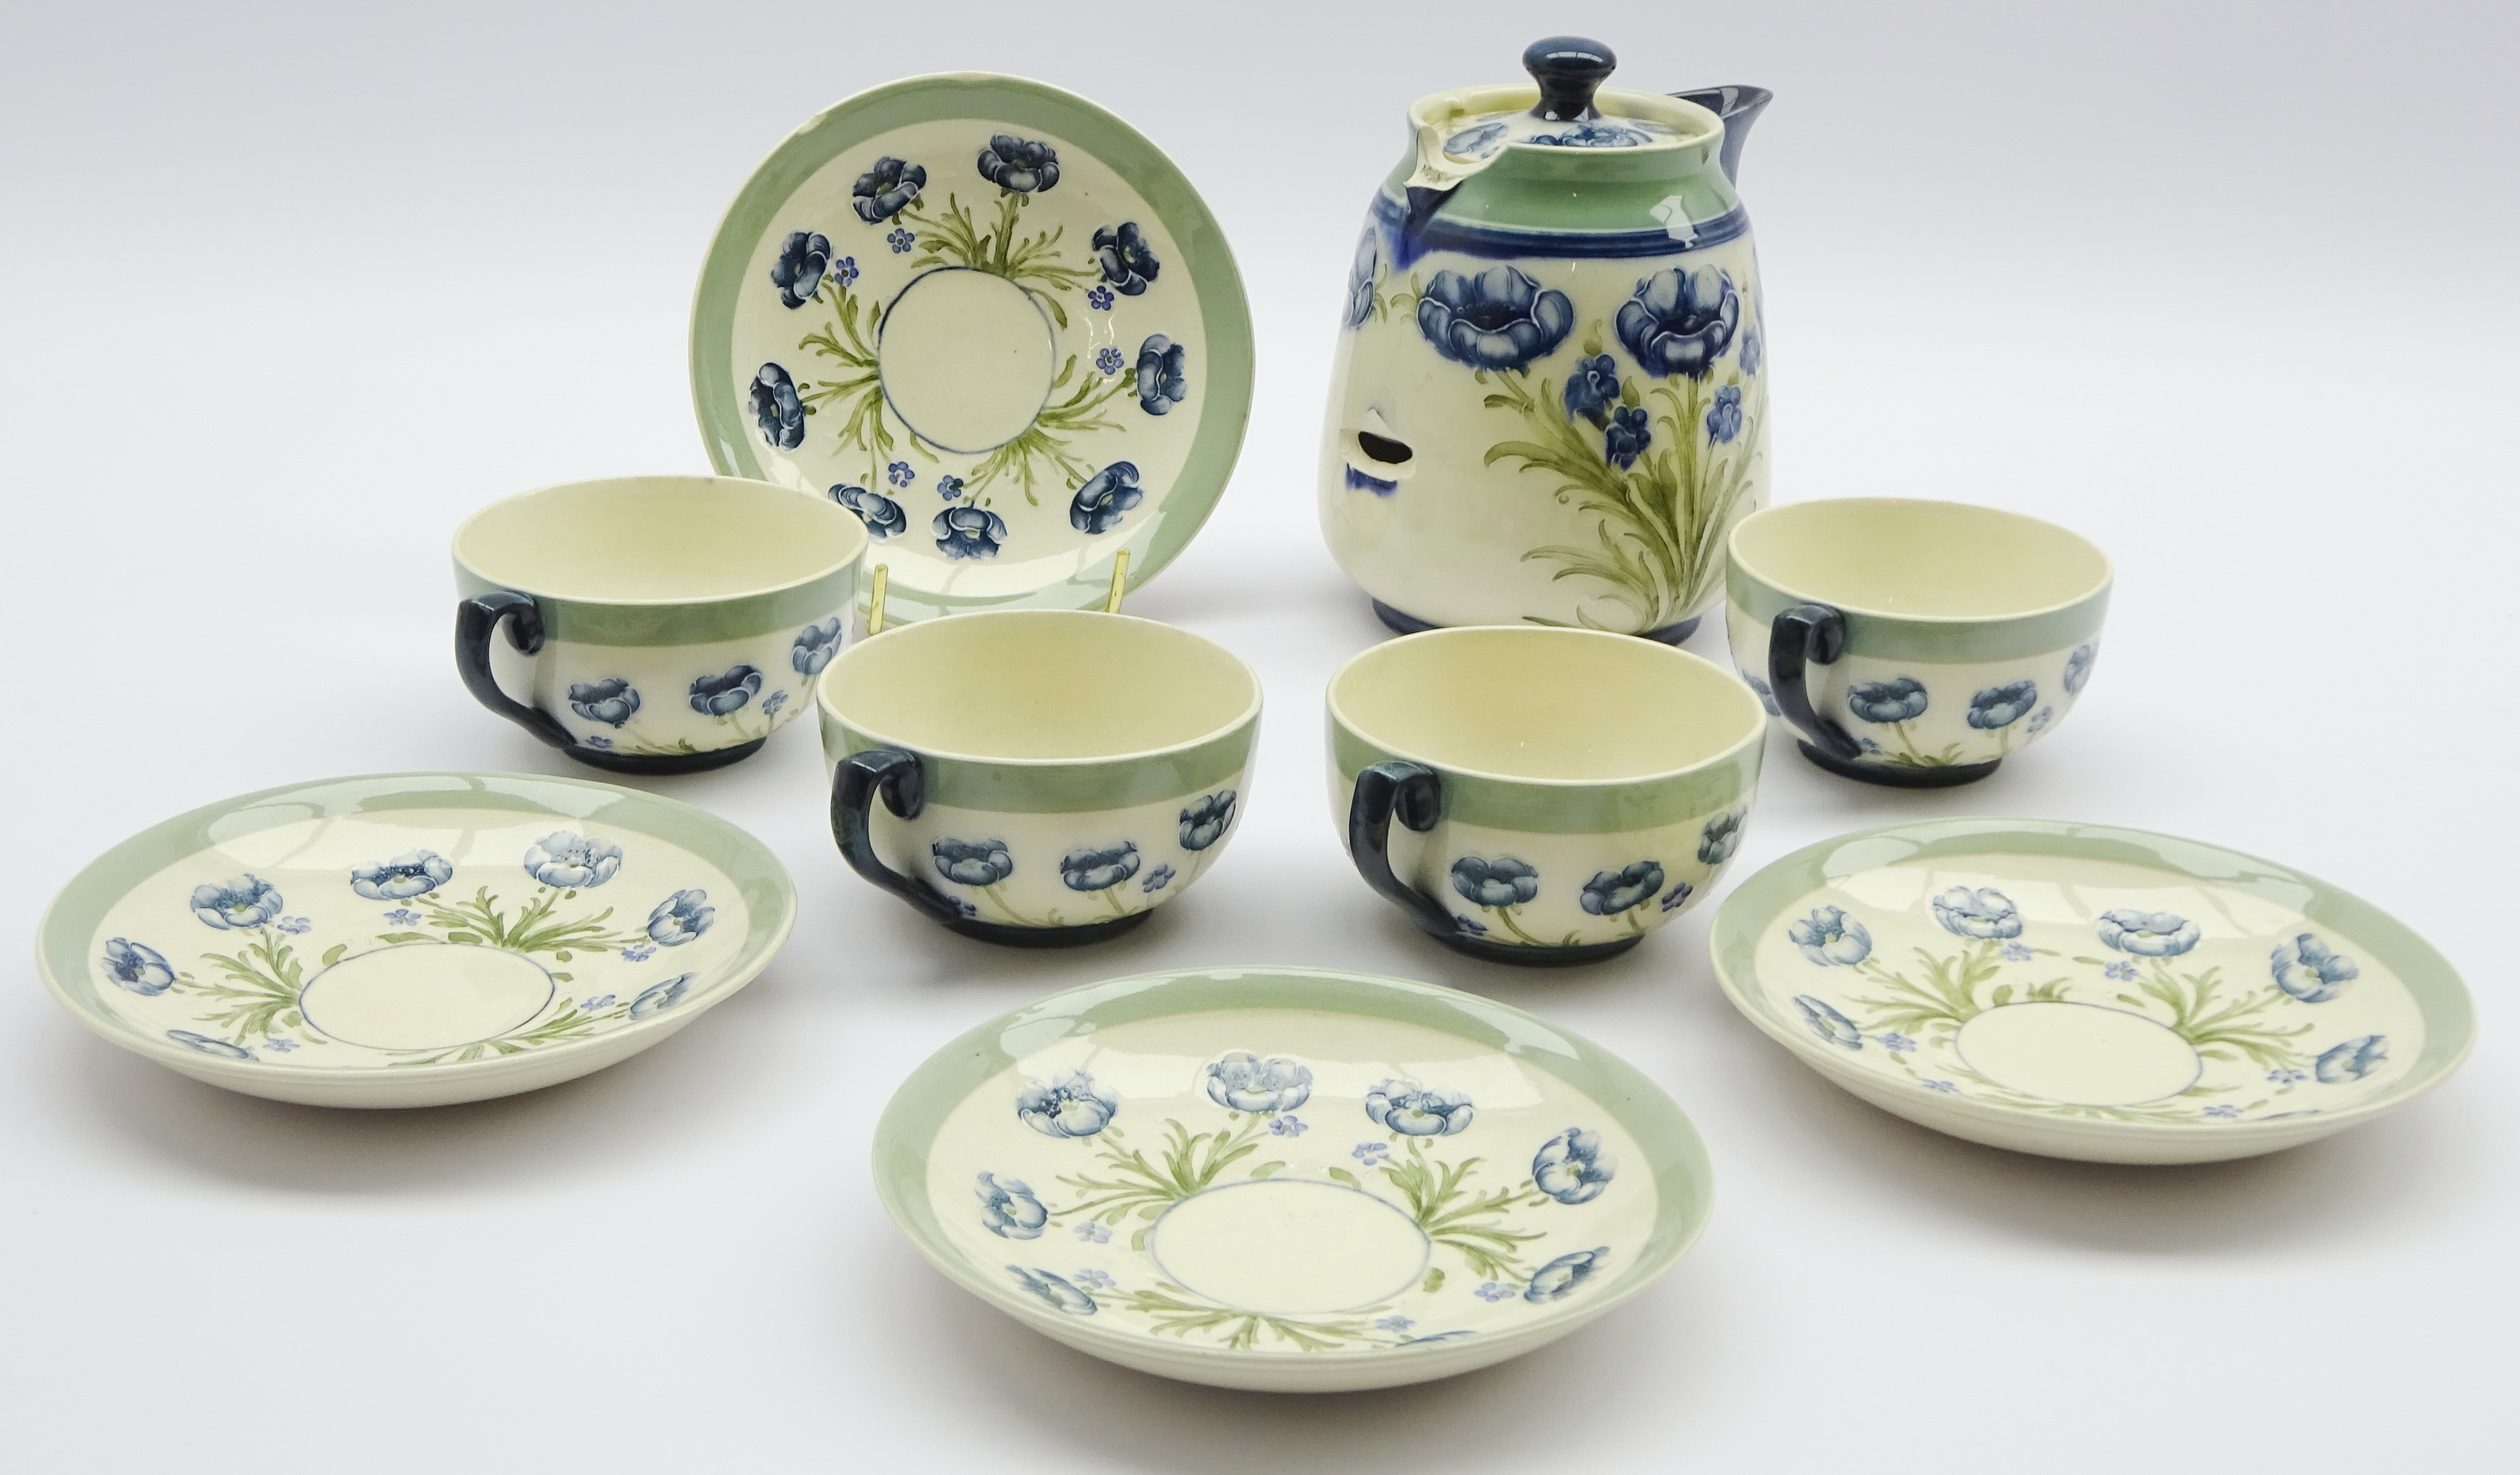 Lot 4 - Moorcroft Macintyre part tea set decorated with the blue poppy pattern comprising four tea cups and